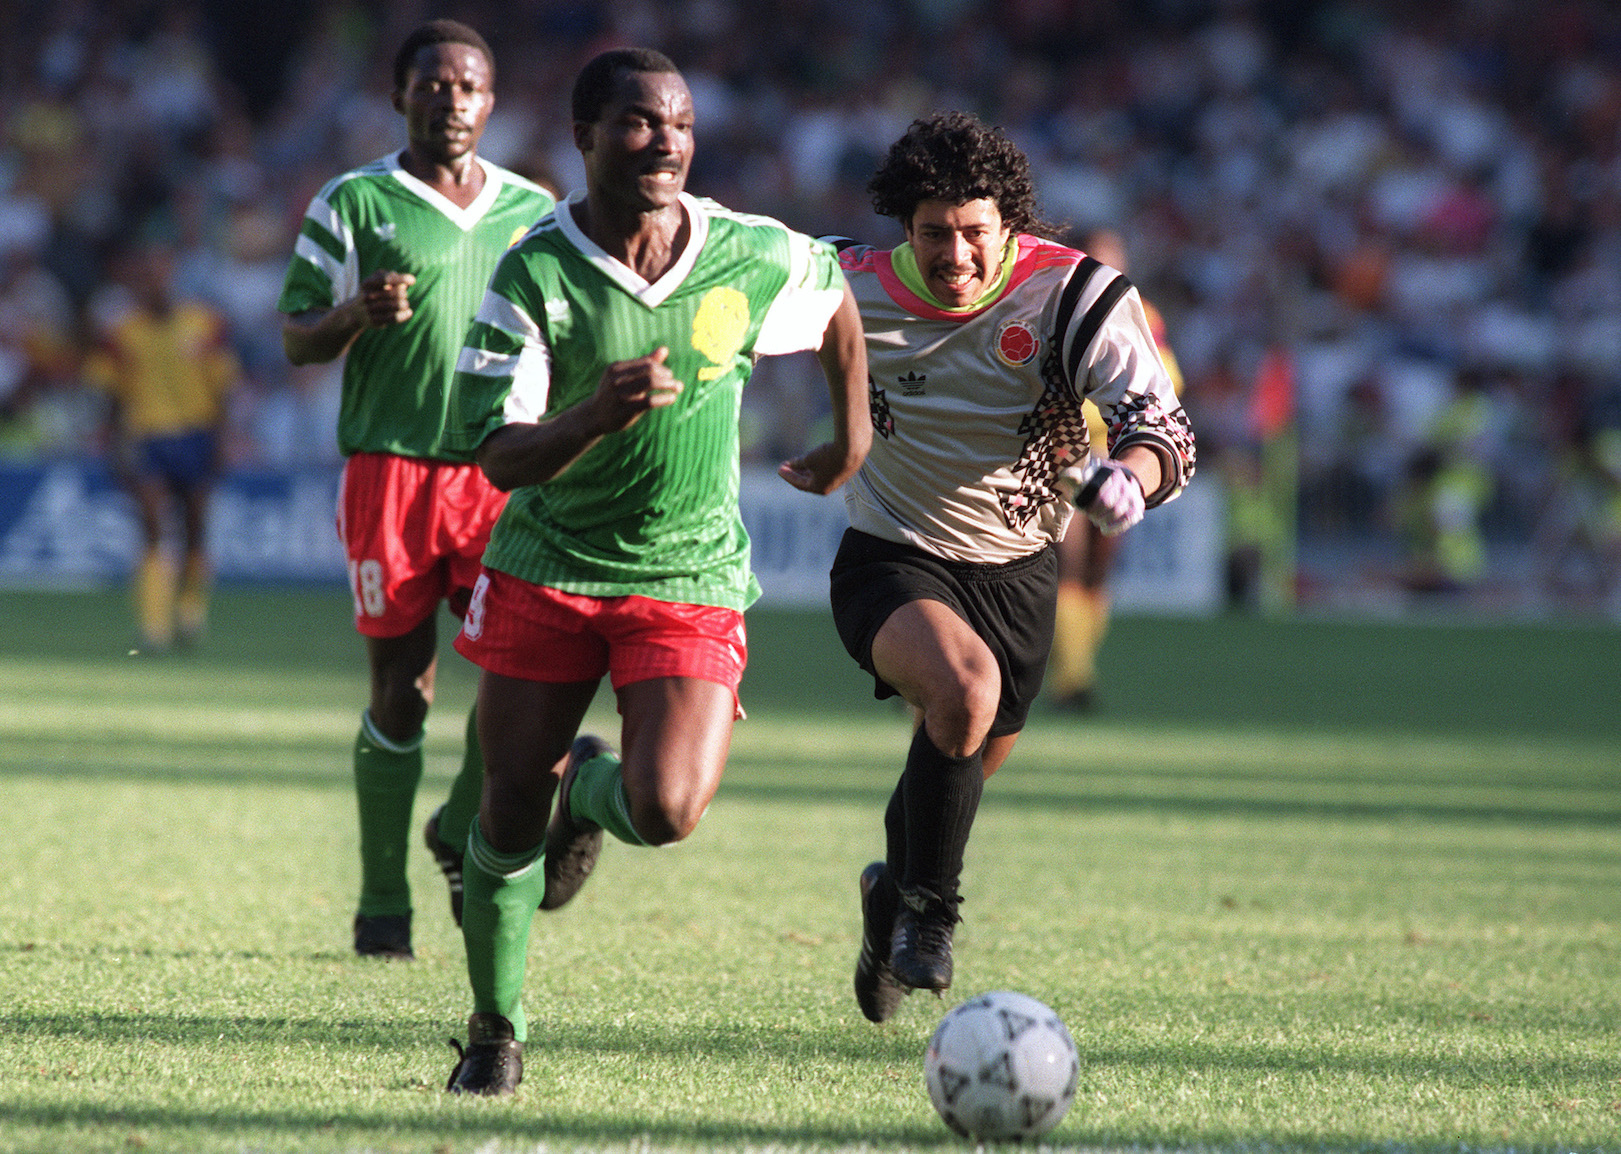 NAPLES, ITALY - JUNE 23: Forward Roger Milla from Cameroon runs past Colombian goalkeeper Jose Higuita (R) after stealing the ball from him on his way to score a goal 23 June 1990 in Naples during the World Cup second round soccer match between Cameroon and Colombia. Milla scored two goals in extra time to help Cameroon defeat Colombia 2-1 (0-0 at the end of regulation time) (Photo credit should read STAFF/AFP/Getty Images)